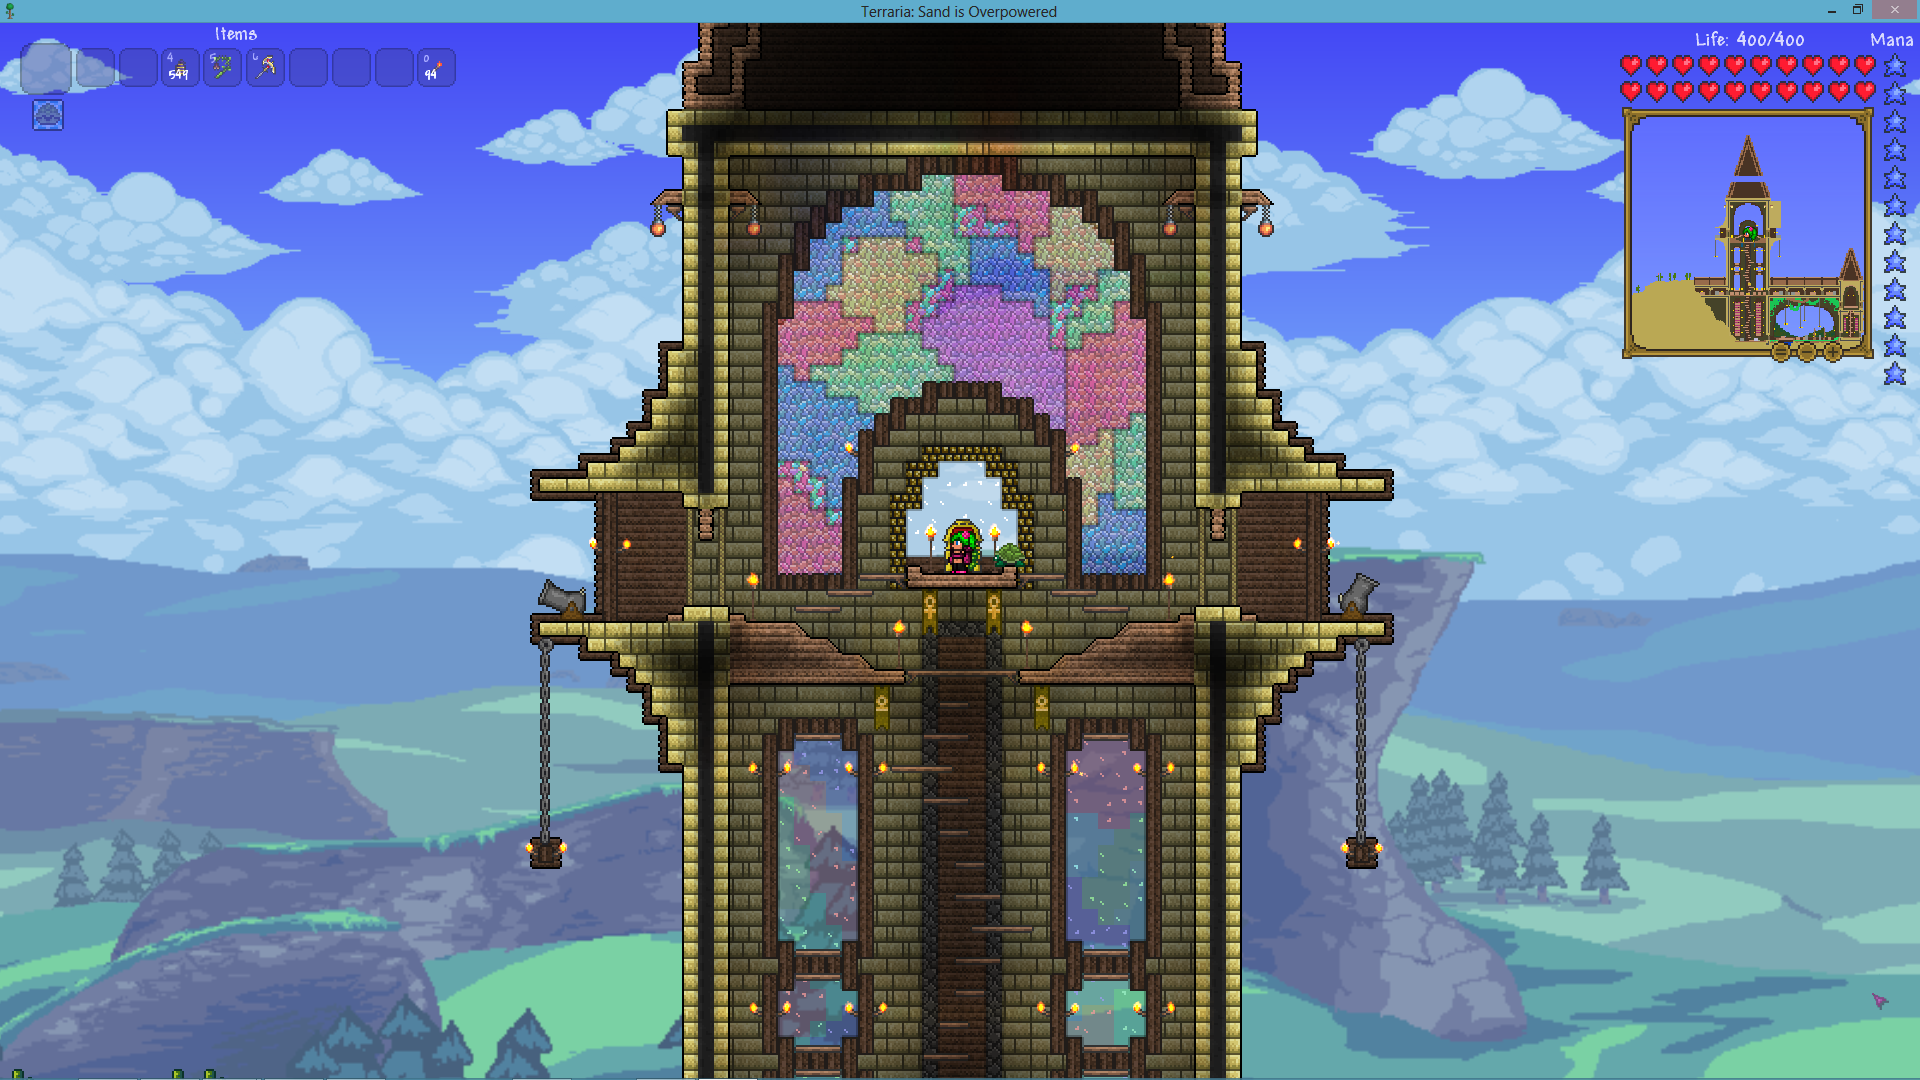 Terraria--cathedral and bell tower | Terraria and Starbound